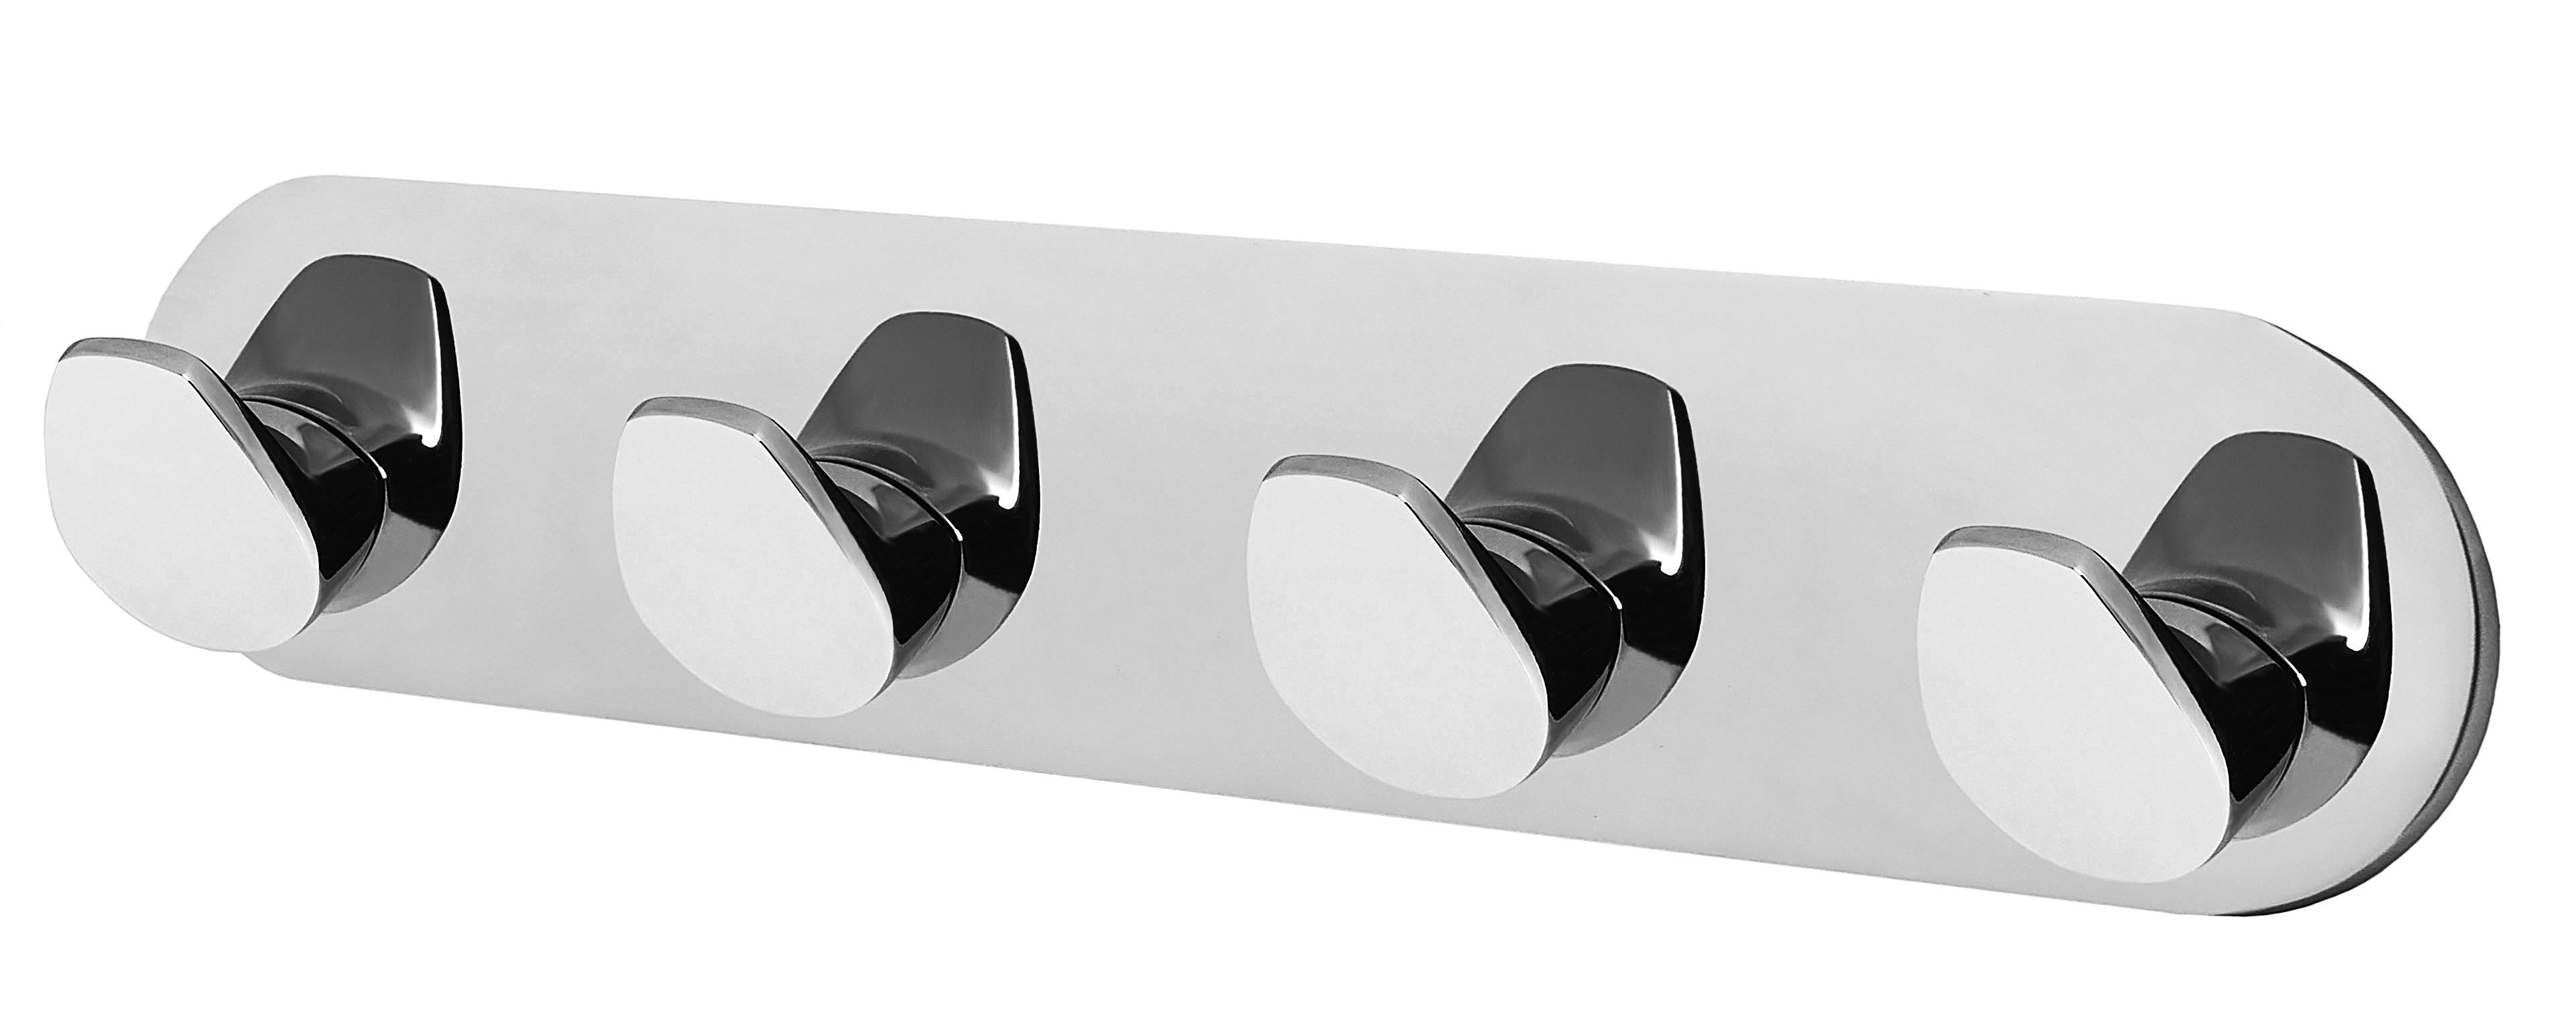 A5035900 Towel hook set